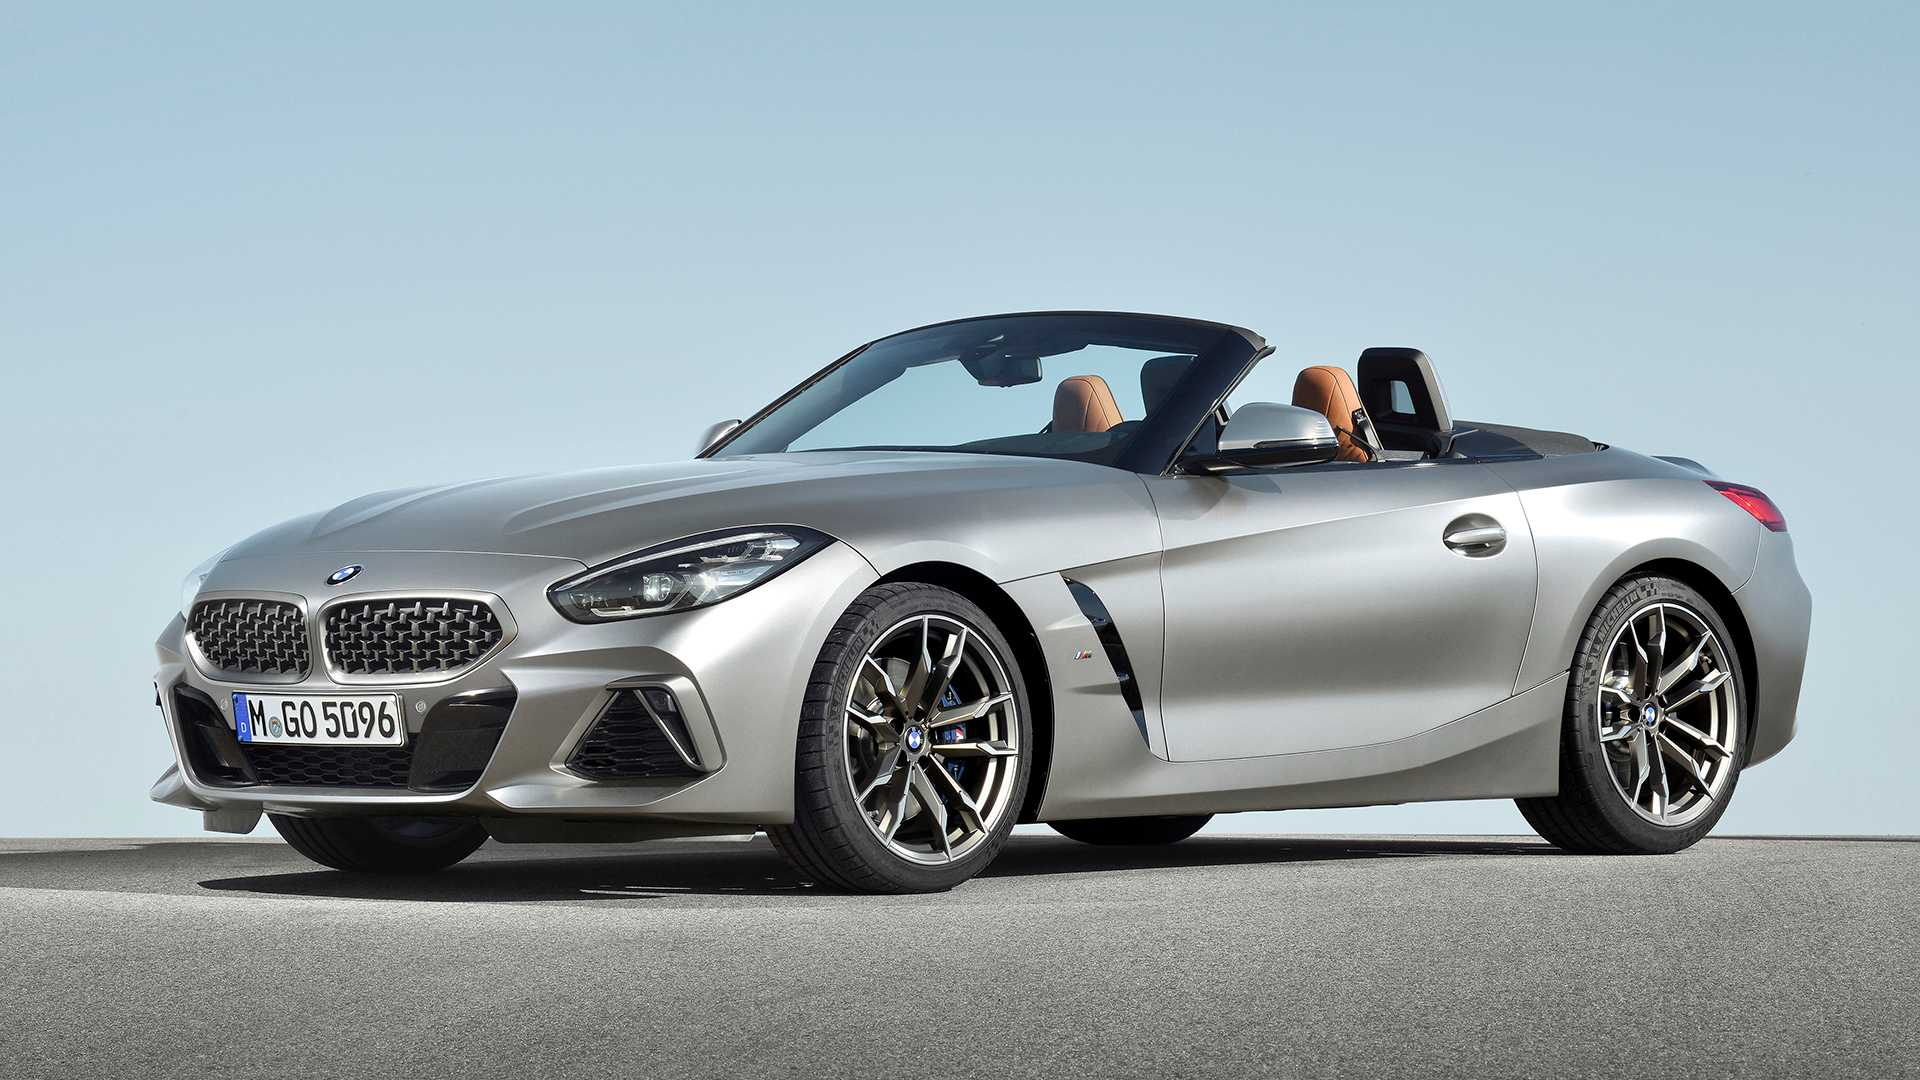 New BMW Z4 goes on sale with £37,000 starting price